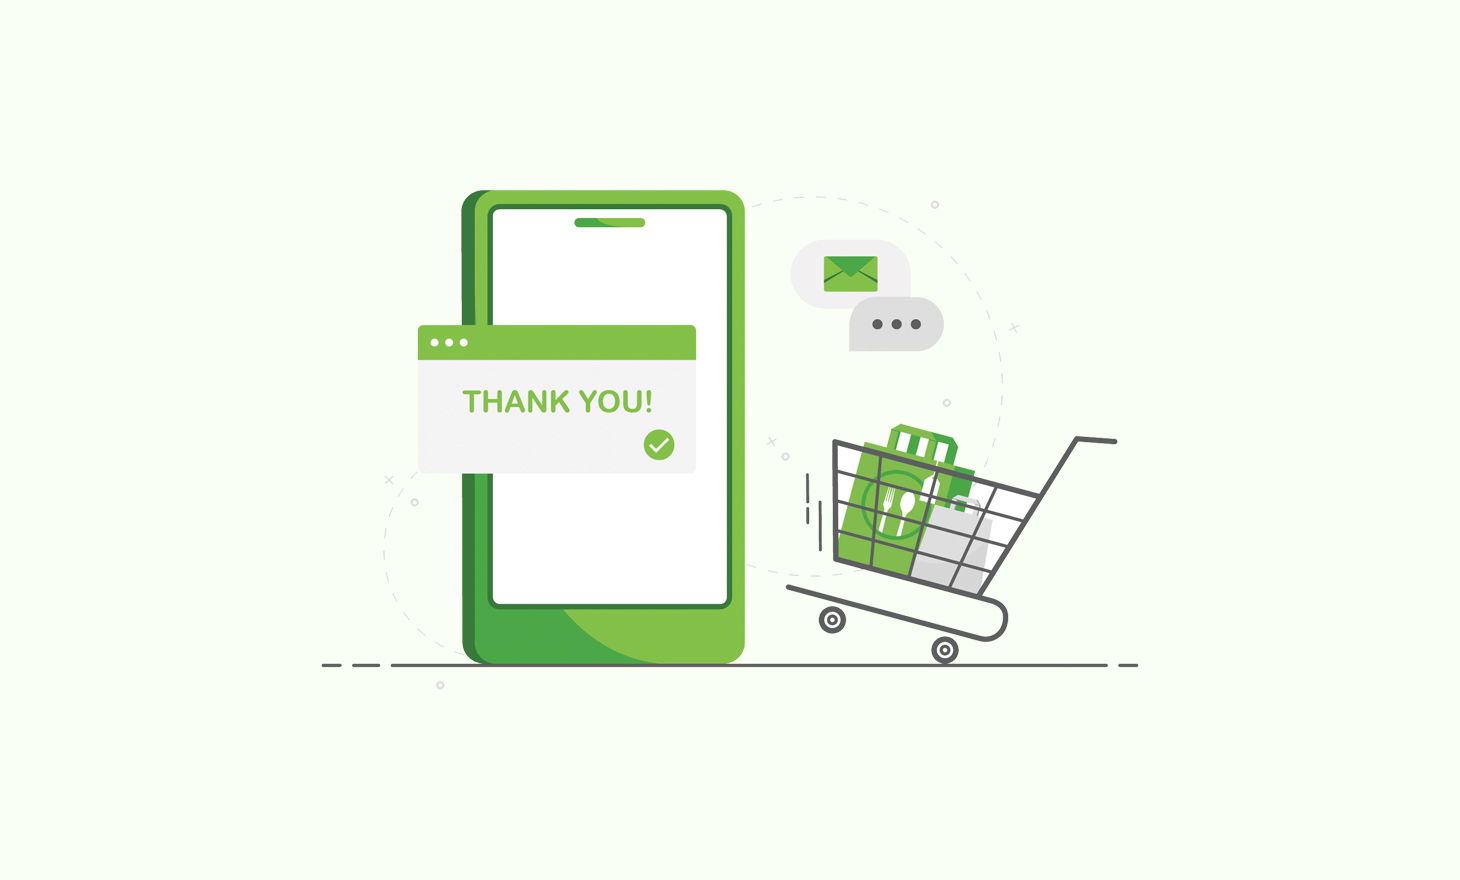 How to best redirect customers to a page after payment in Shopify